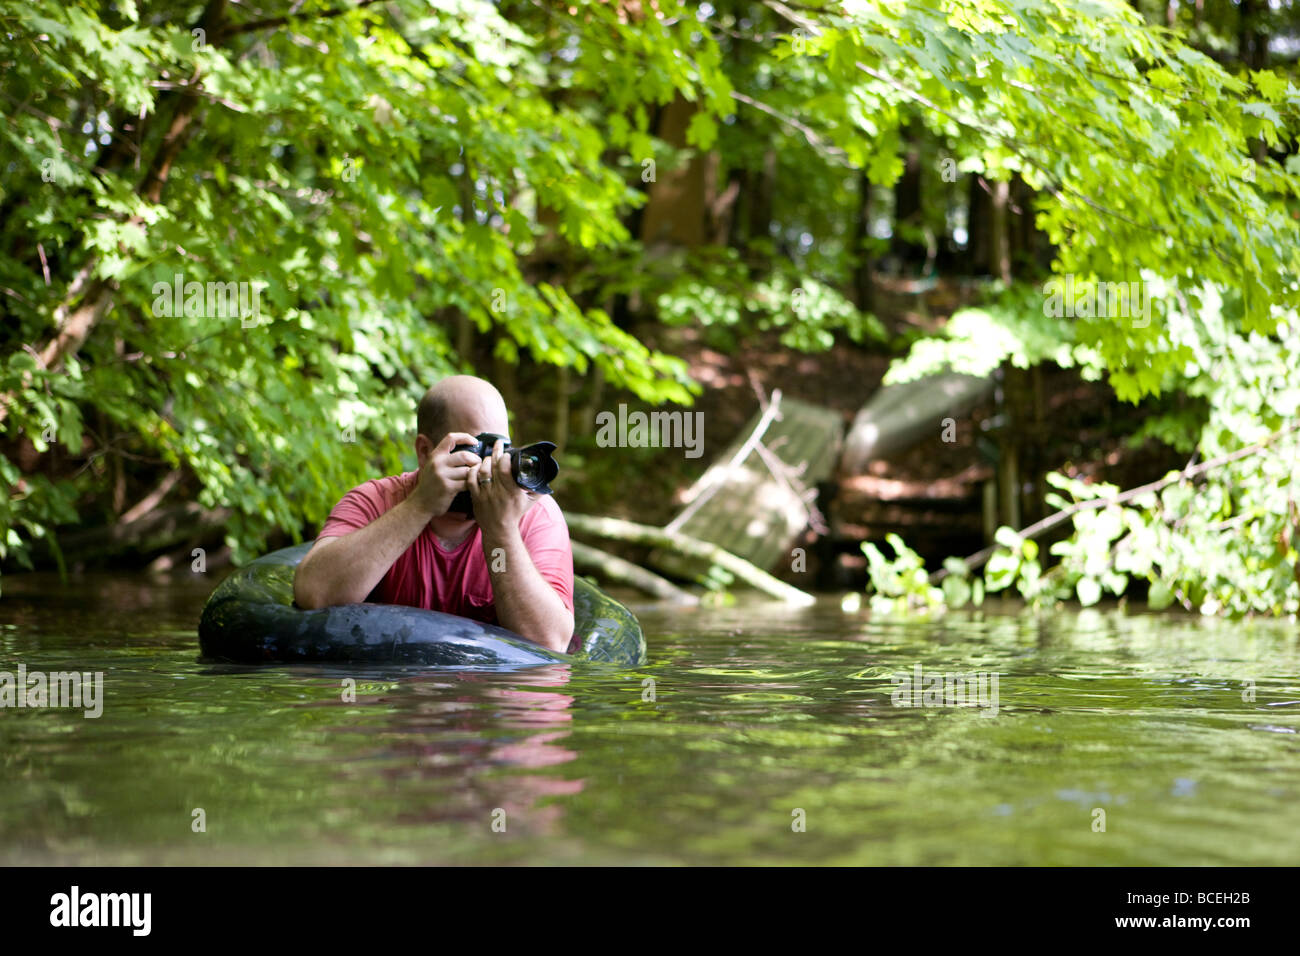 Man photographing from the water in an innertube - Stock Image